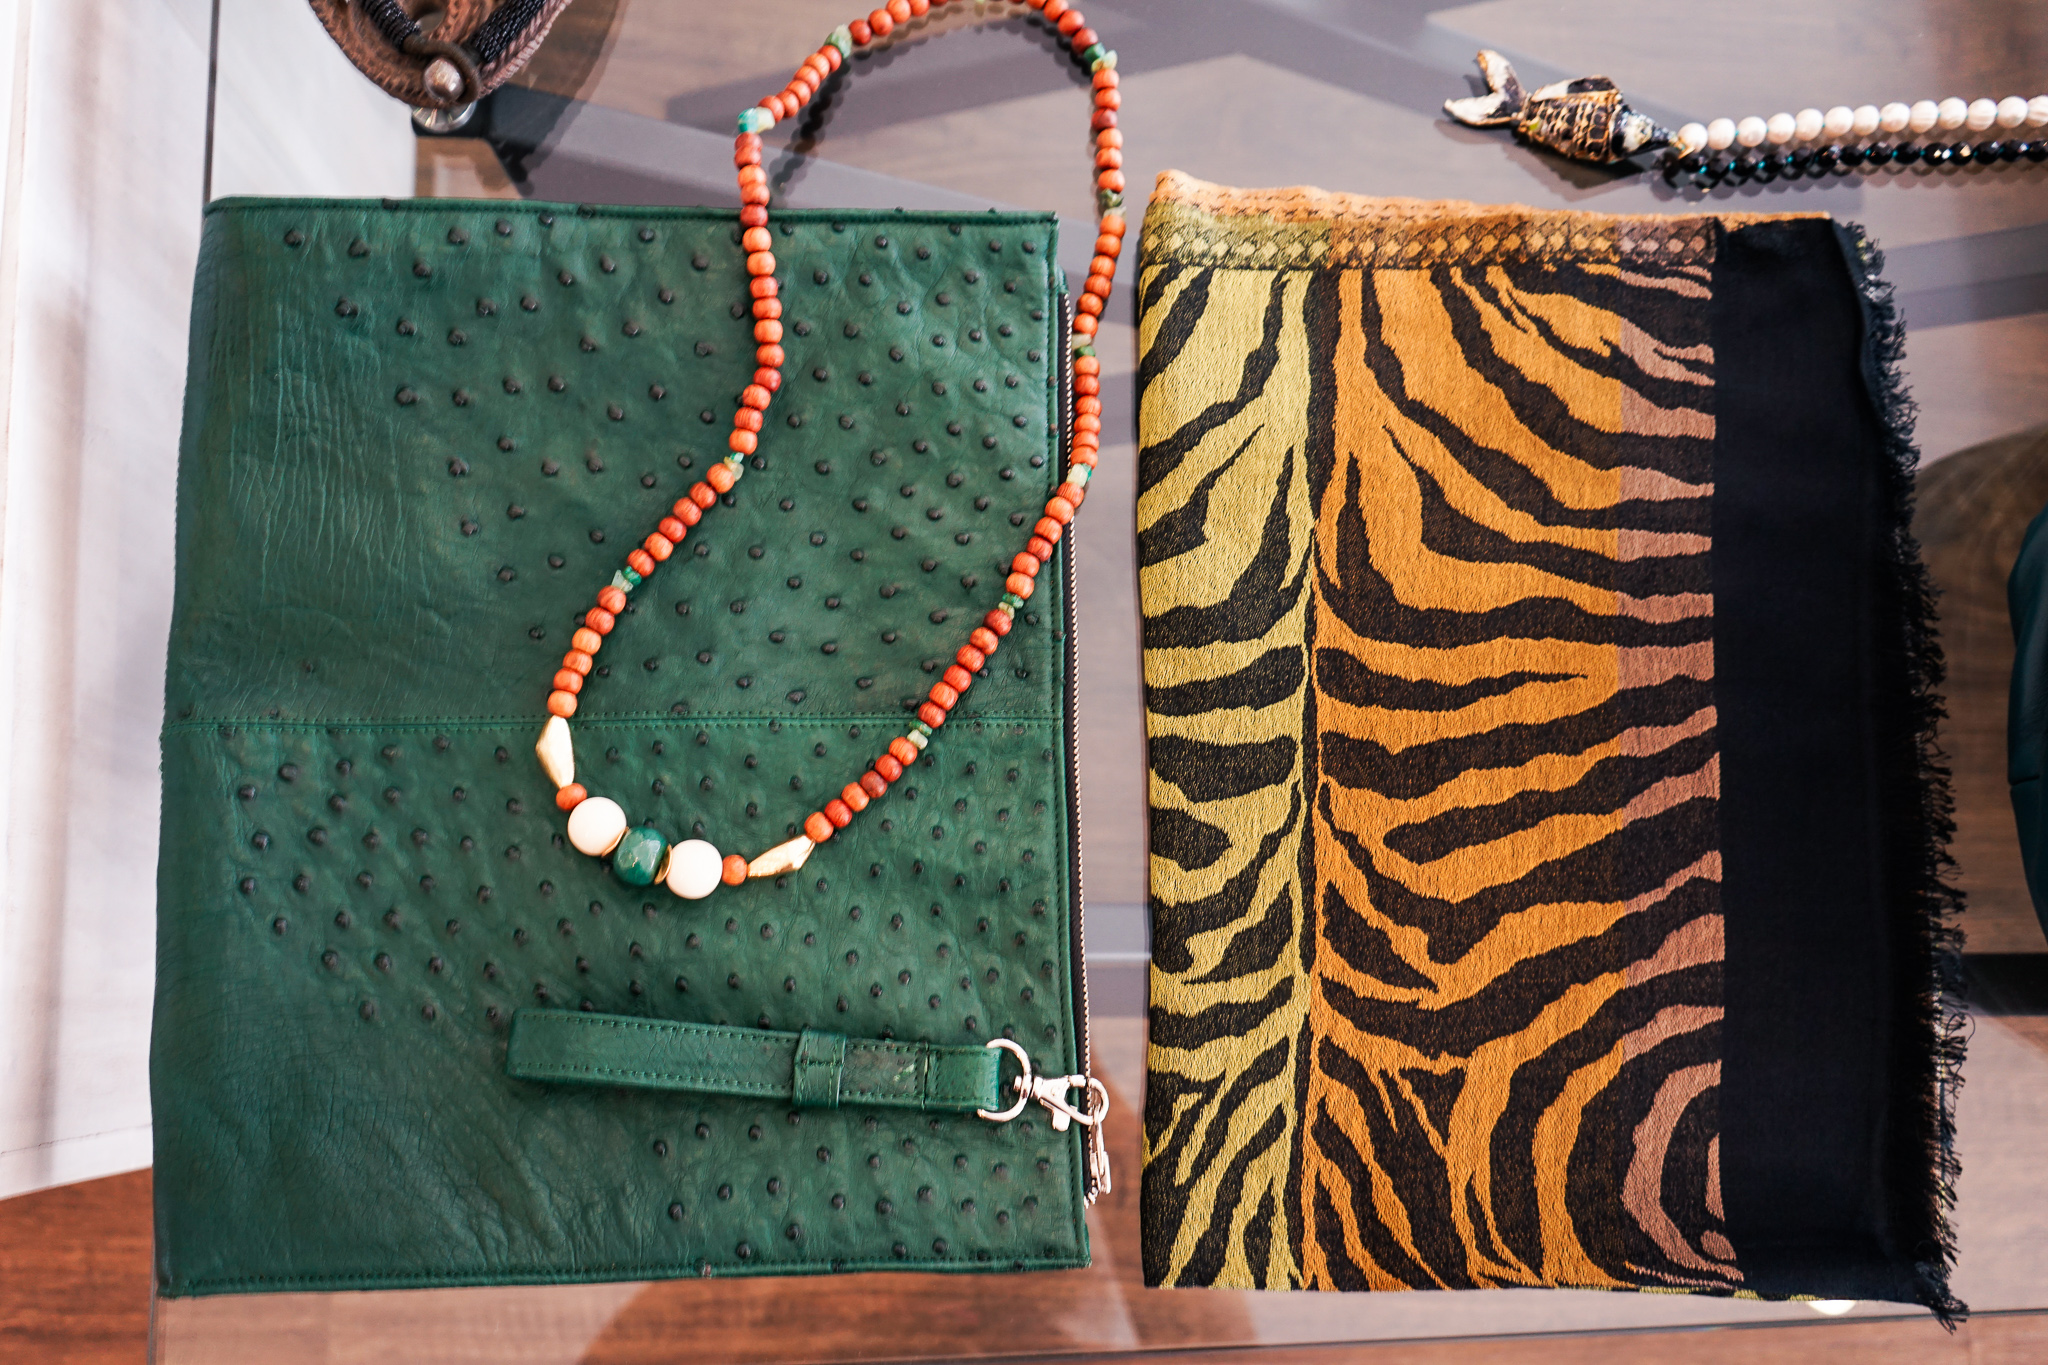 Ostrich leather clutches at L'Atelier Touche